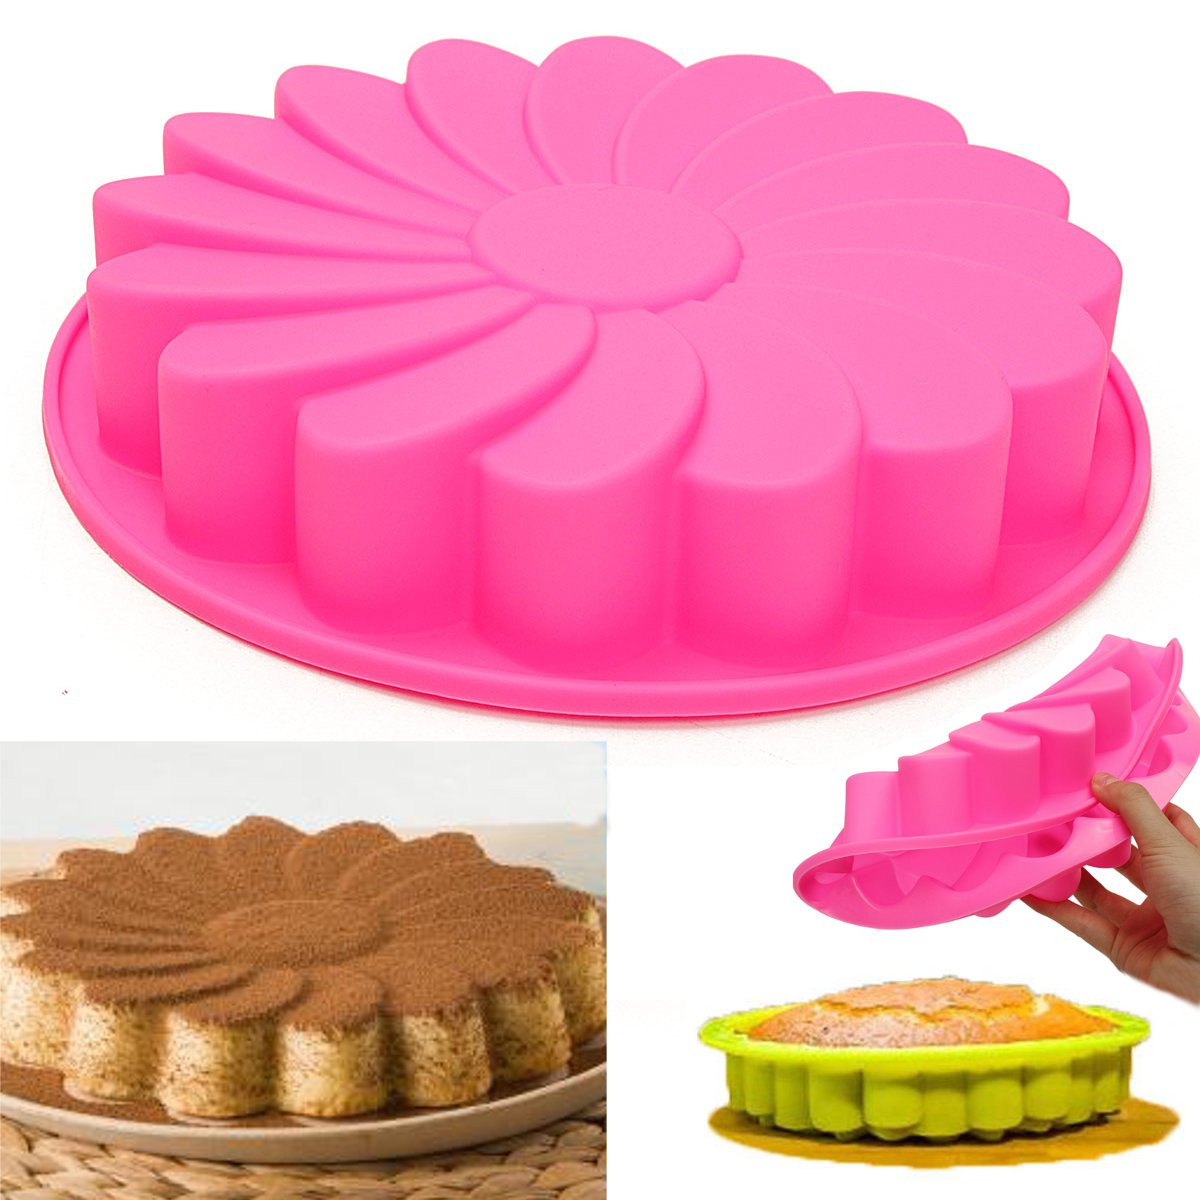 "Meigar 9"" Large Round Silicone Flower Cake Bakeware Baking Cup Pan Cupcake Liner Mold Today's Special Offer! by"